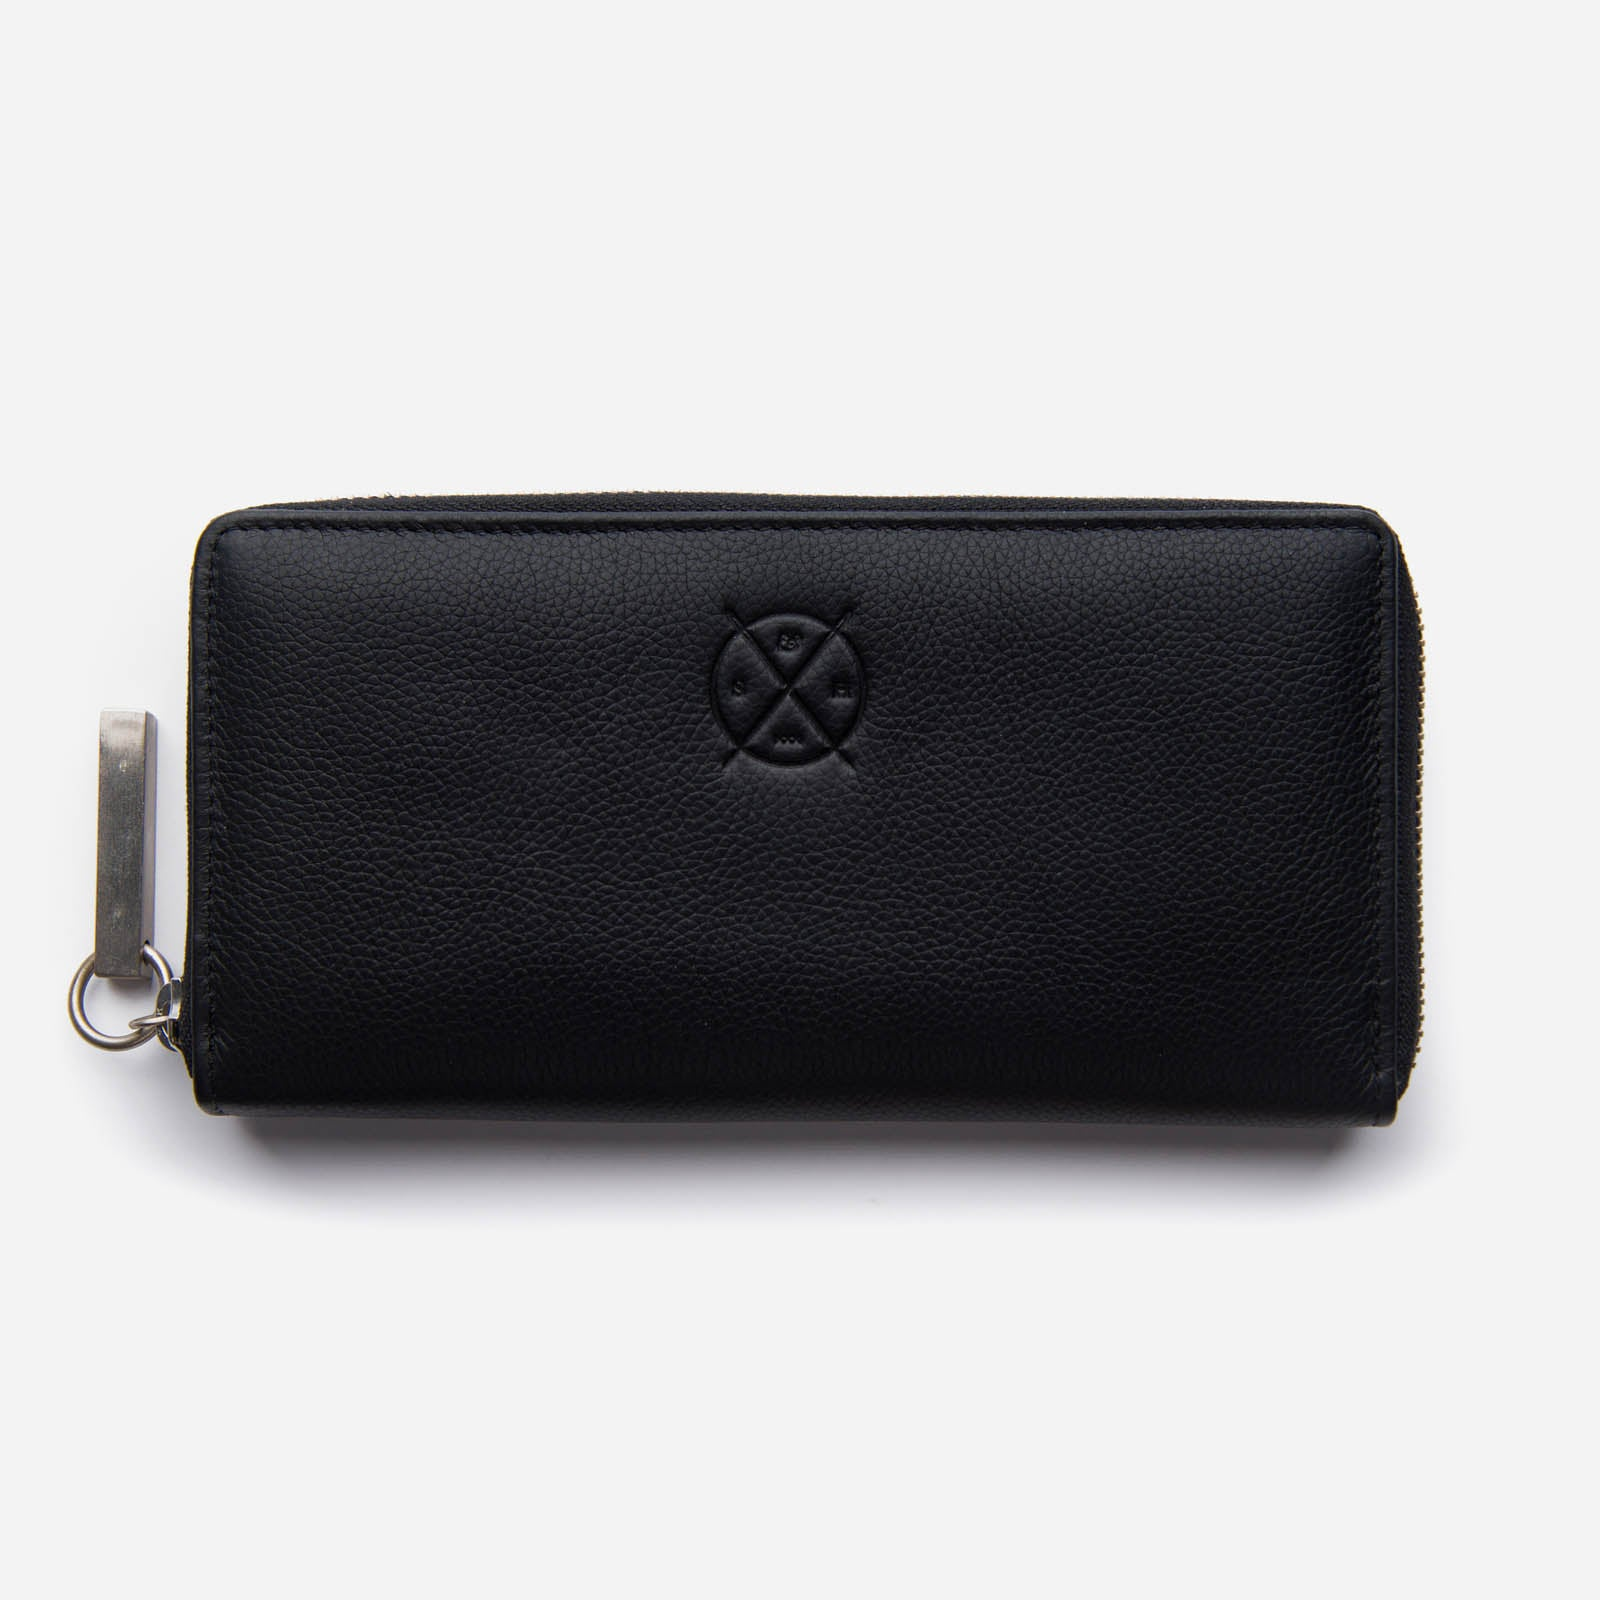 Stitch & Hide Christina Wallet